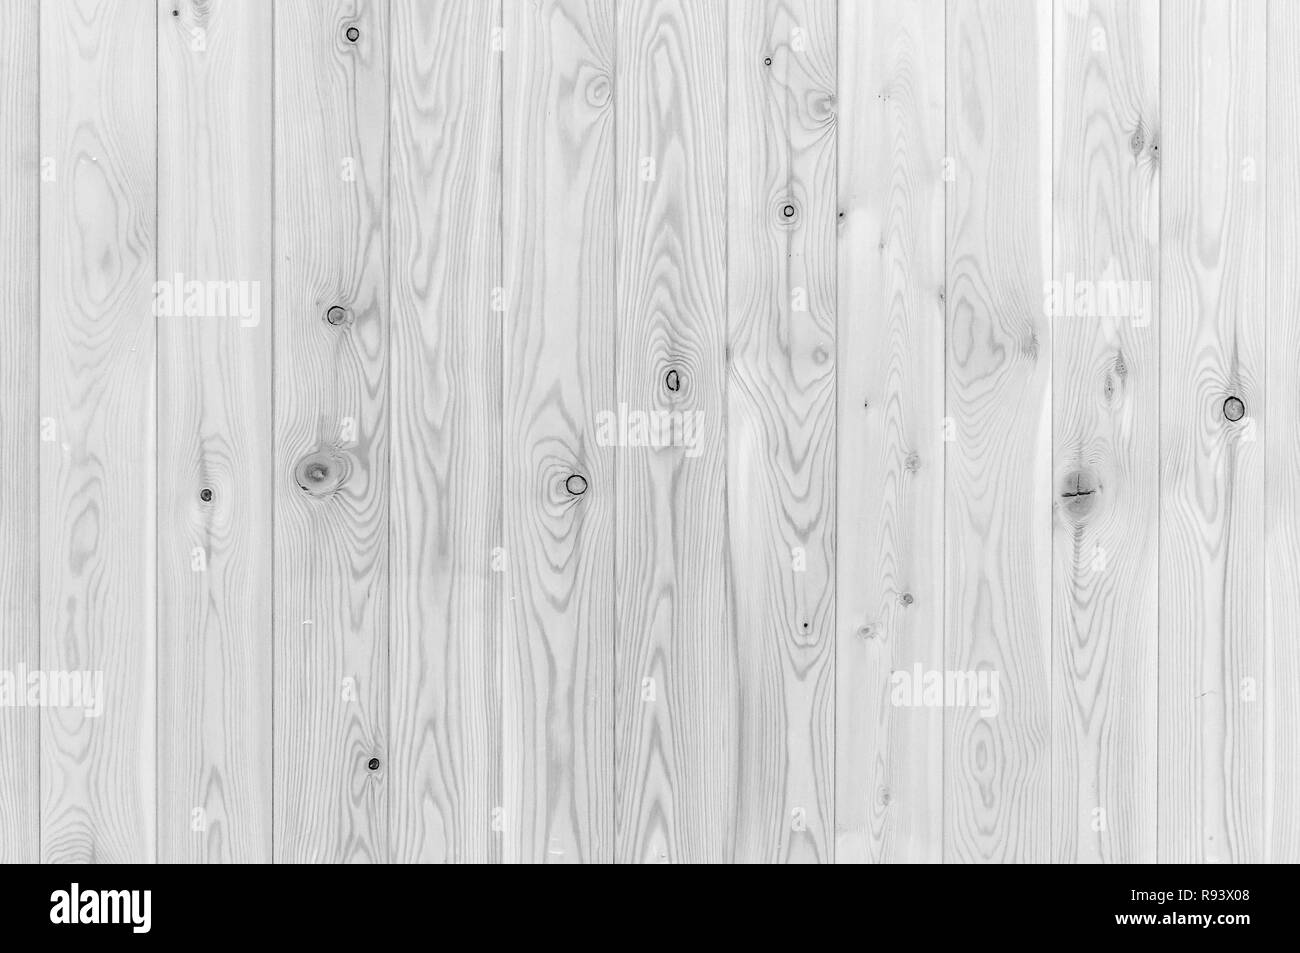 Wood texture. Wood texture for design and decoration. - Stock Image